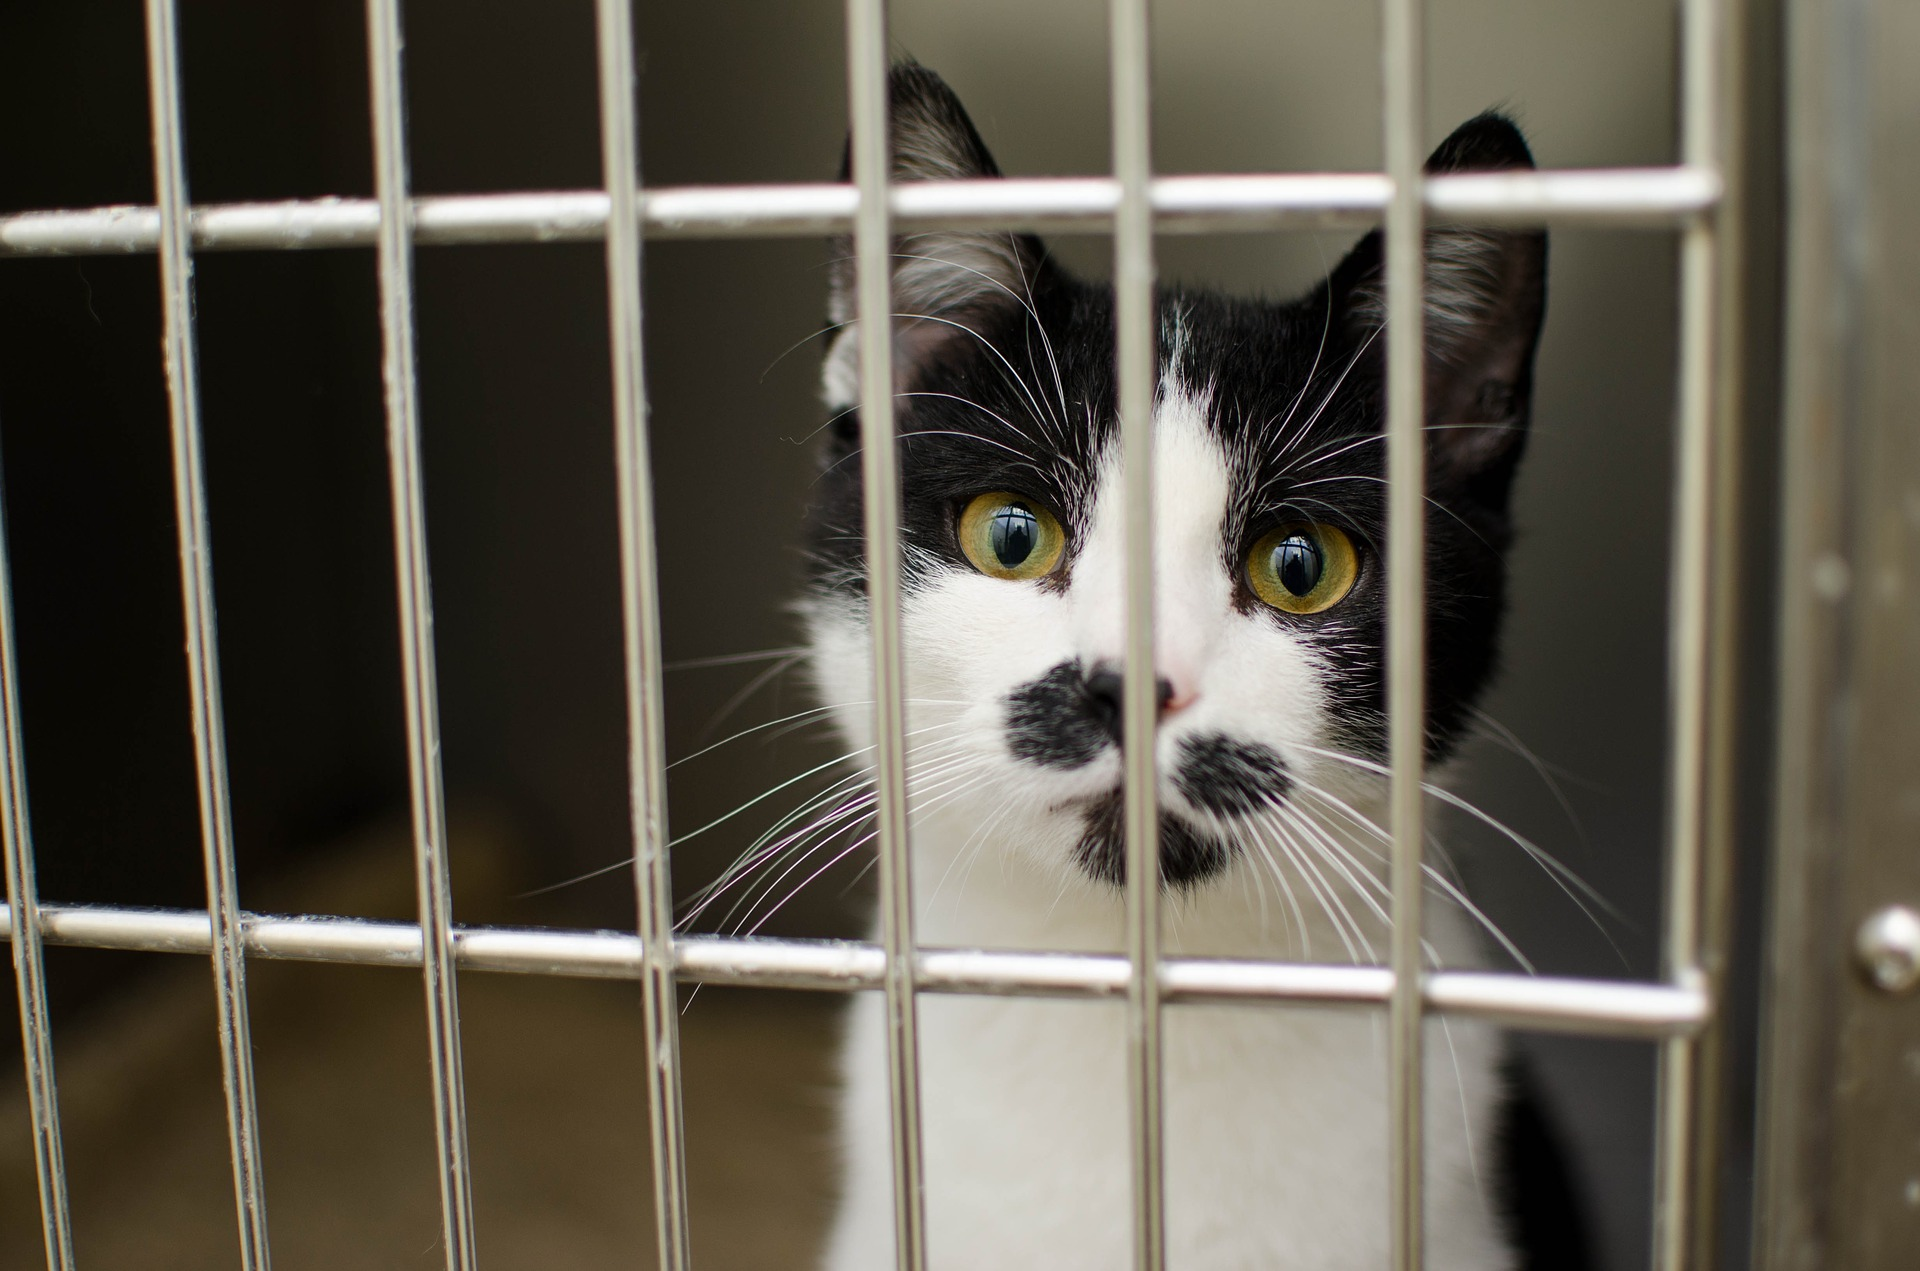 Image of cat in cage; training can make cats more adoptable